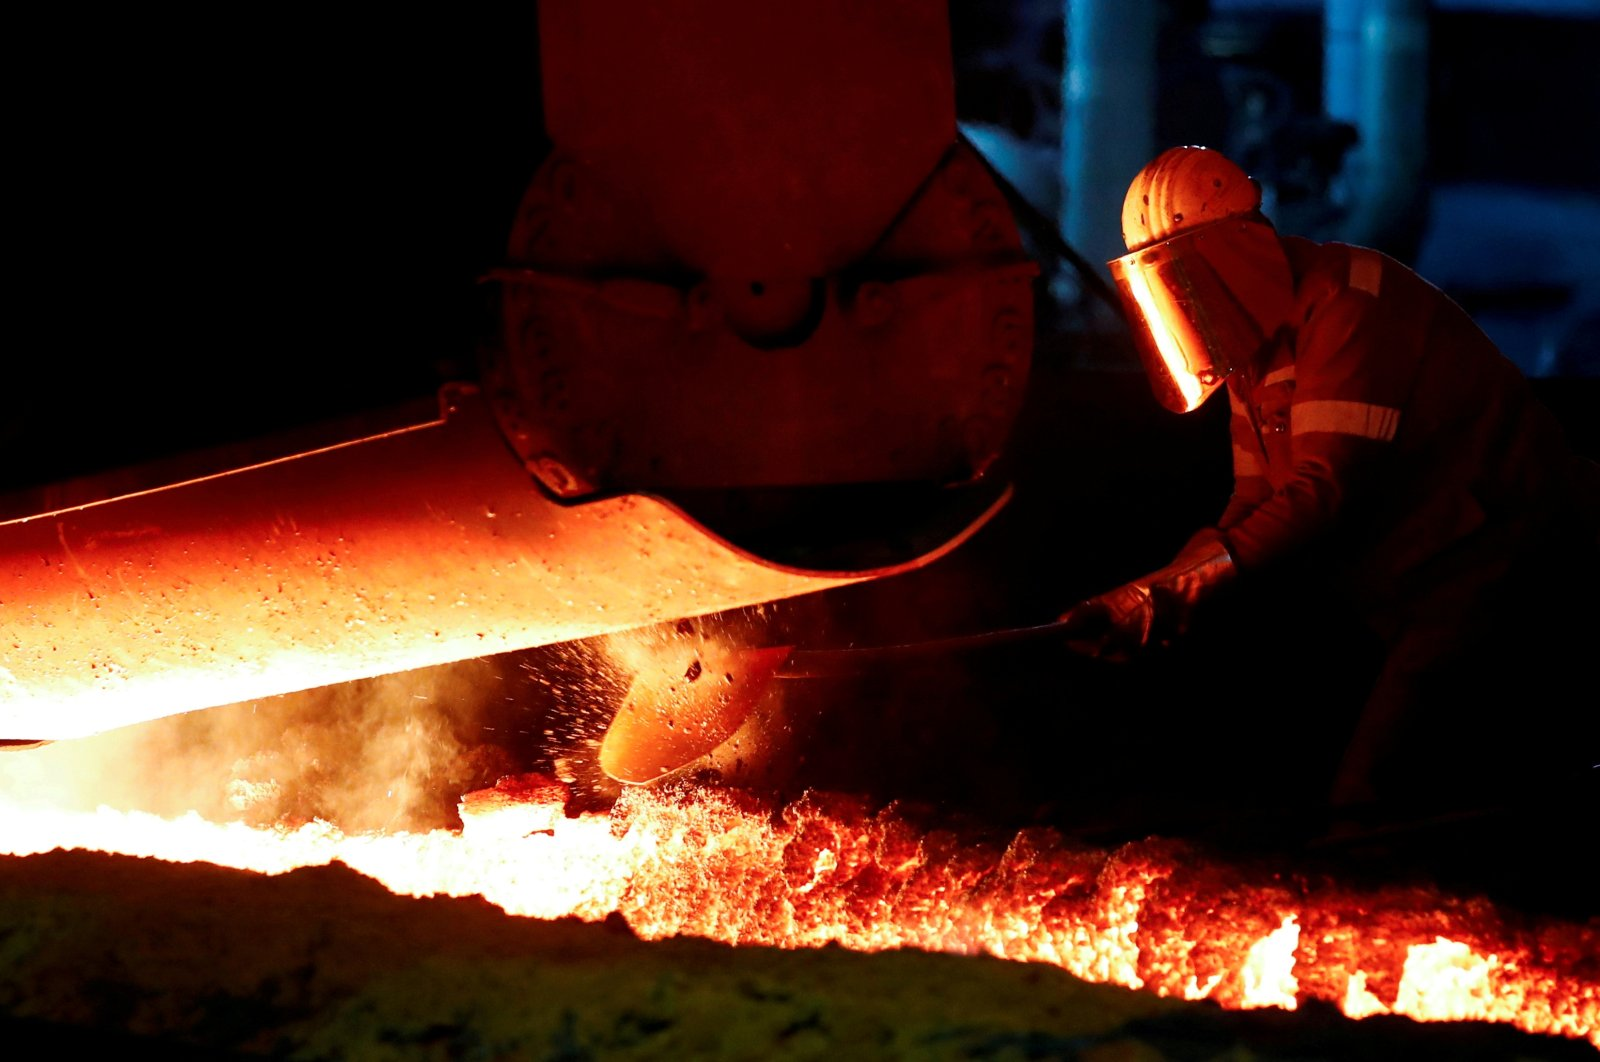 A steel worker of Germany's industrial conglomerate ThyssenKrupp AG works near a blast furnace at Germany's largest steel factory in Duisburg, Germany, Jan. 28, 2019. (Reuters Photo)